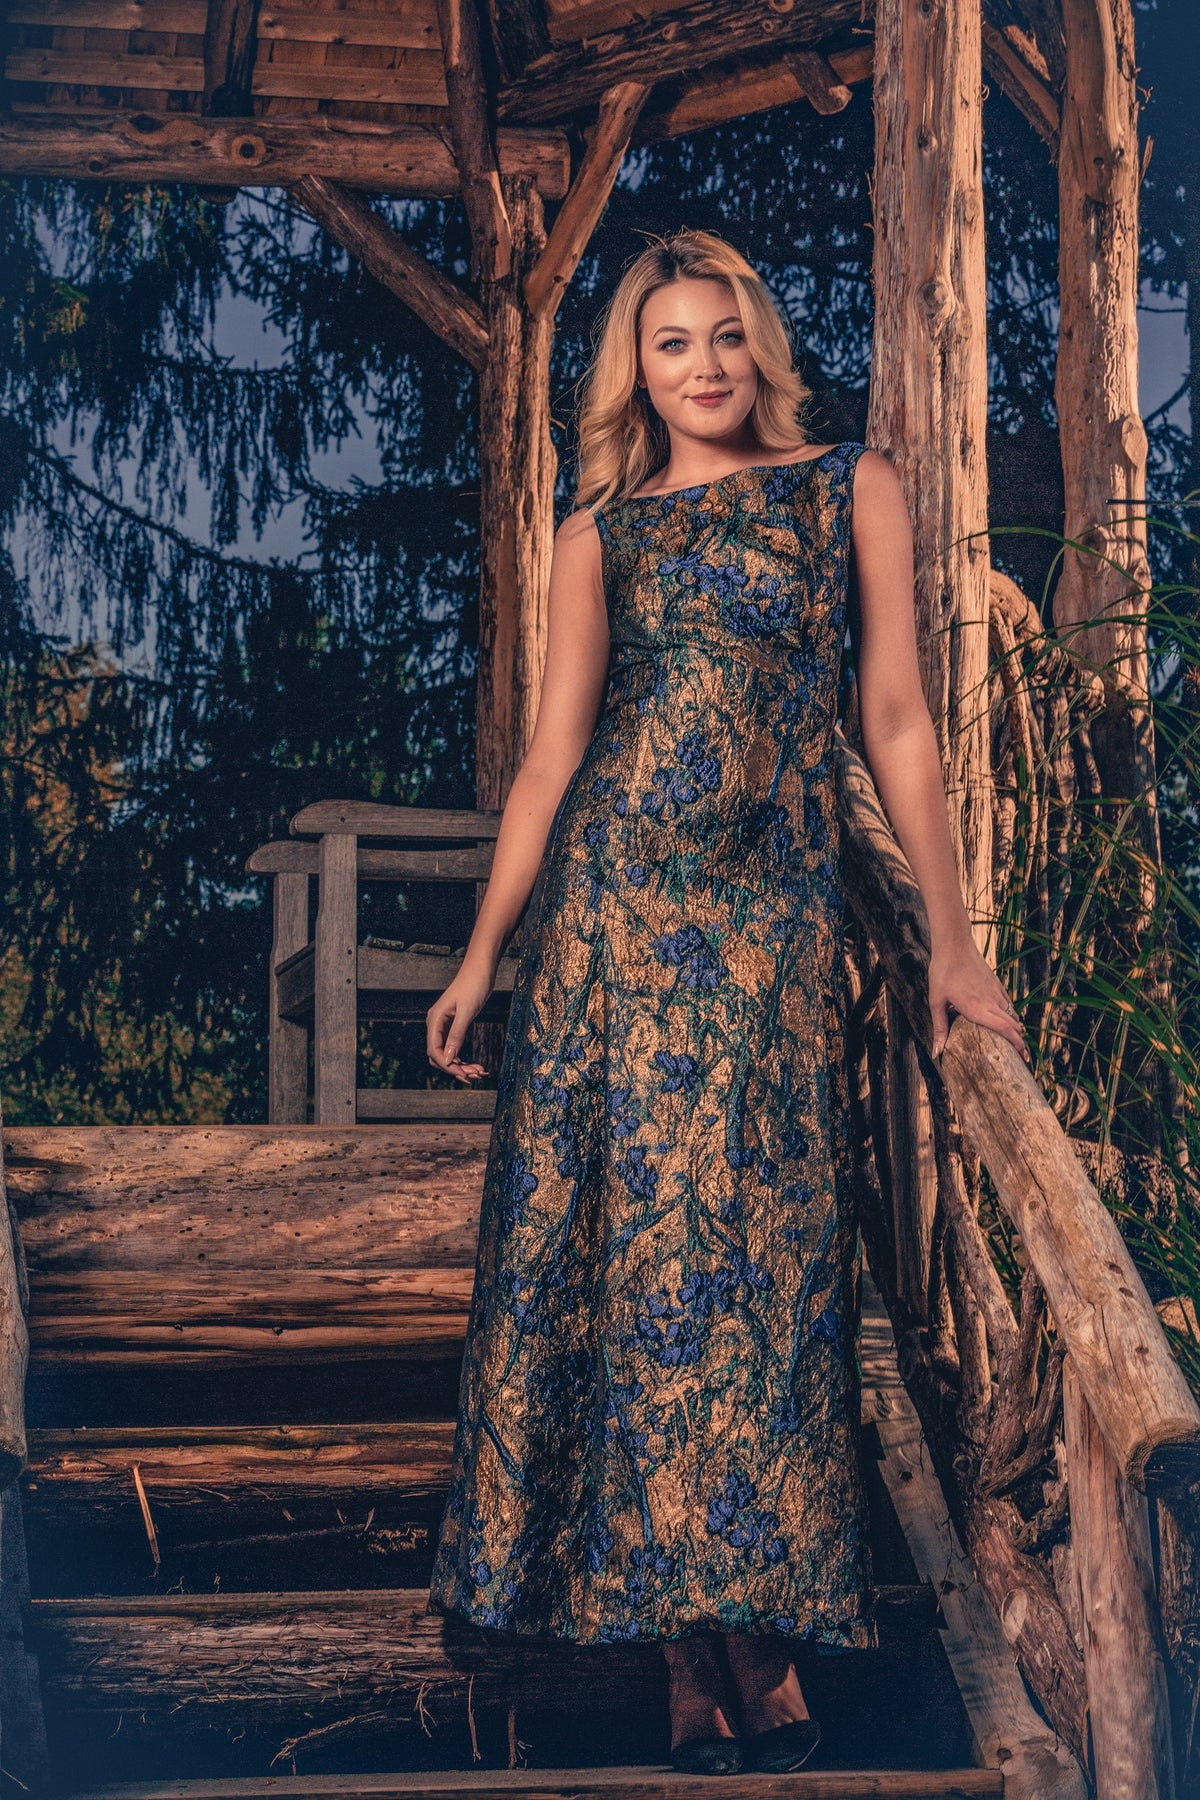 anna nieman designer dress Boston. A dress from Swiss metallic brocade, in dark gold and blue shades. The perfect gown for your special evening!